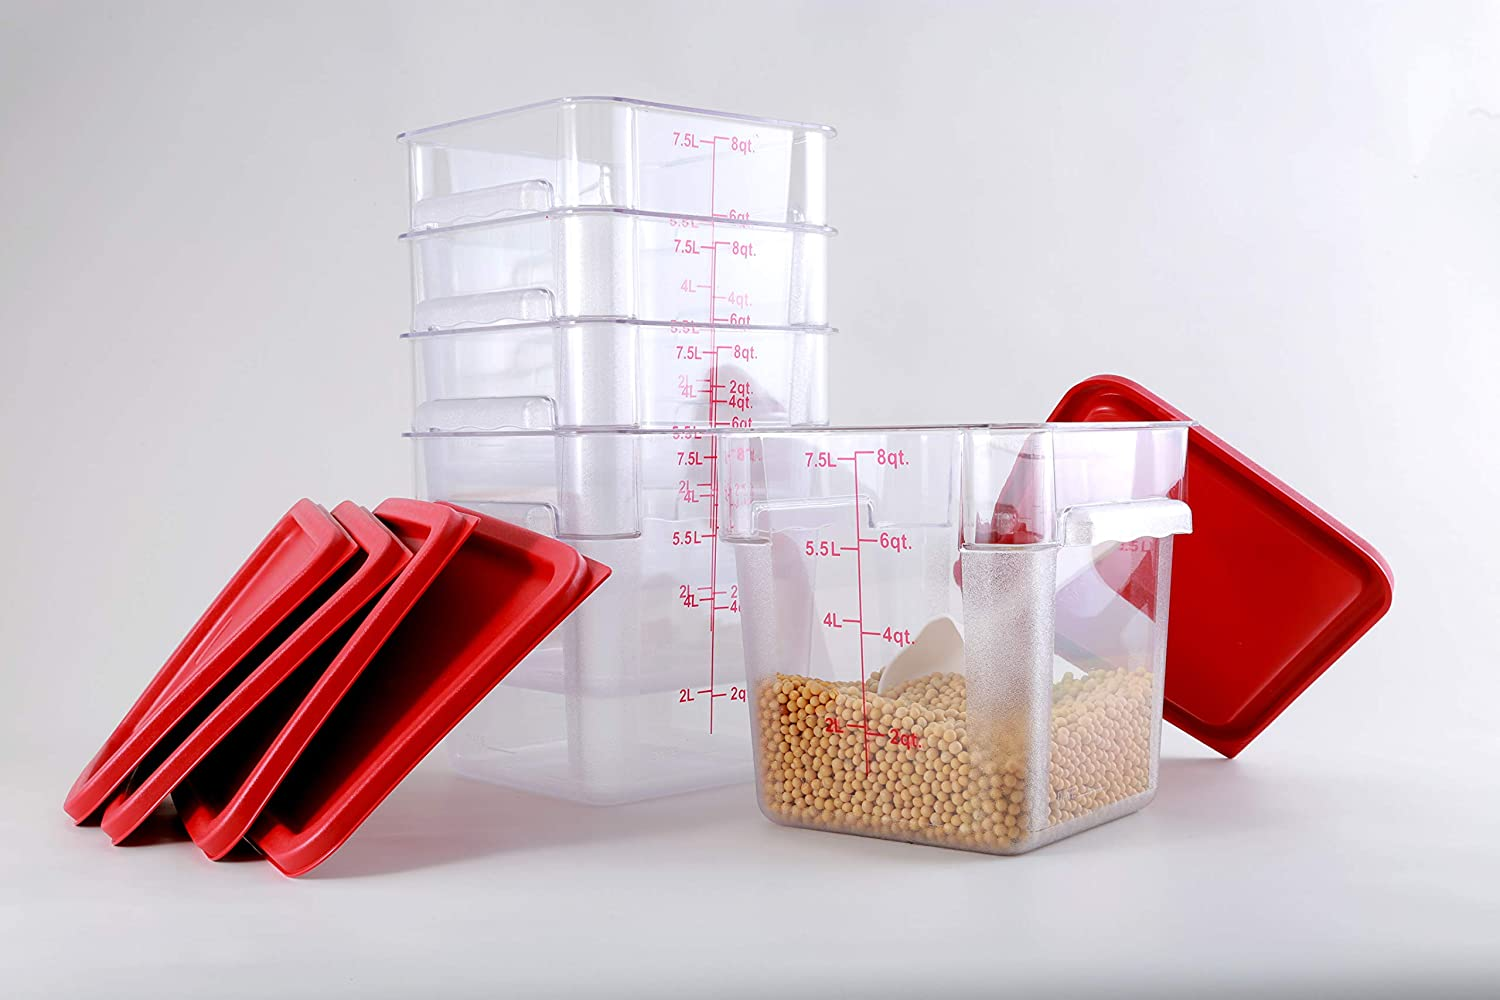 Hakka Sale Special Price 8 Qt Commercial Max 59% OFF Grade Storage Food Square with Containers